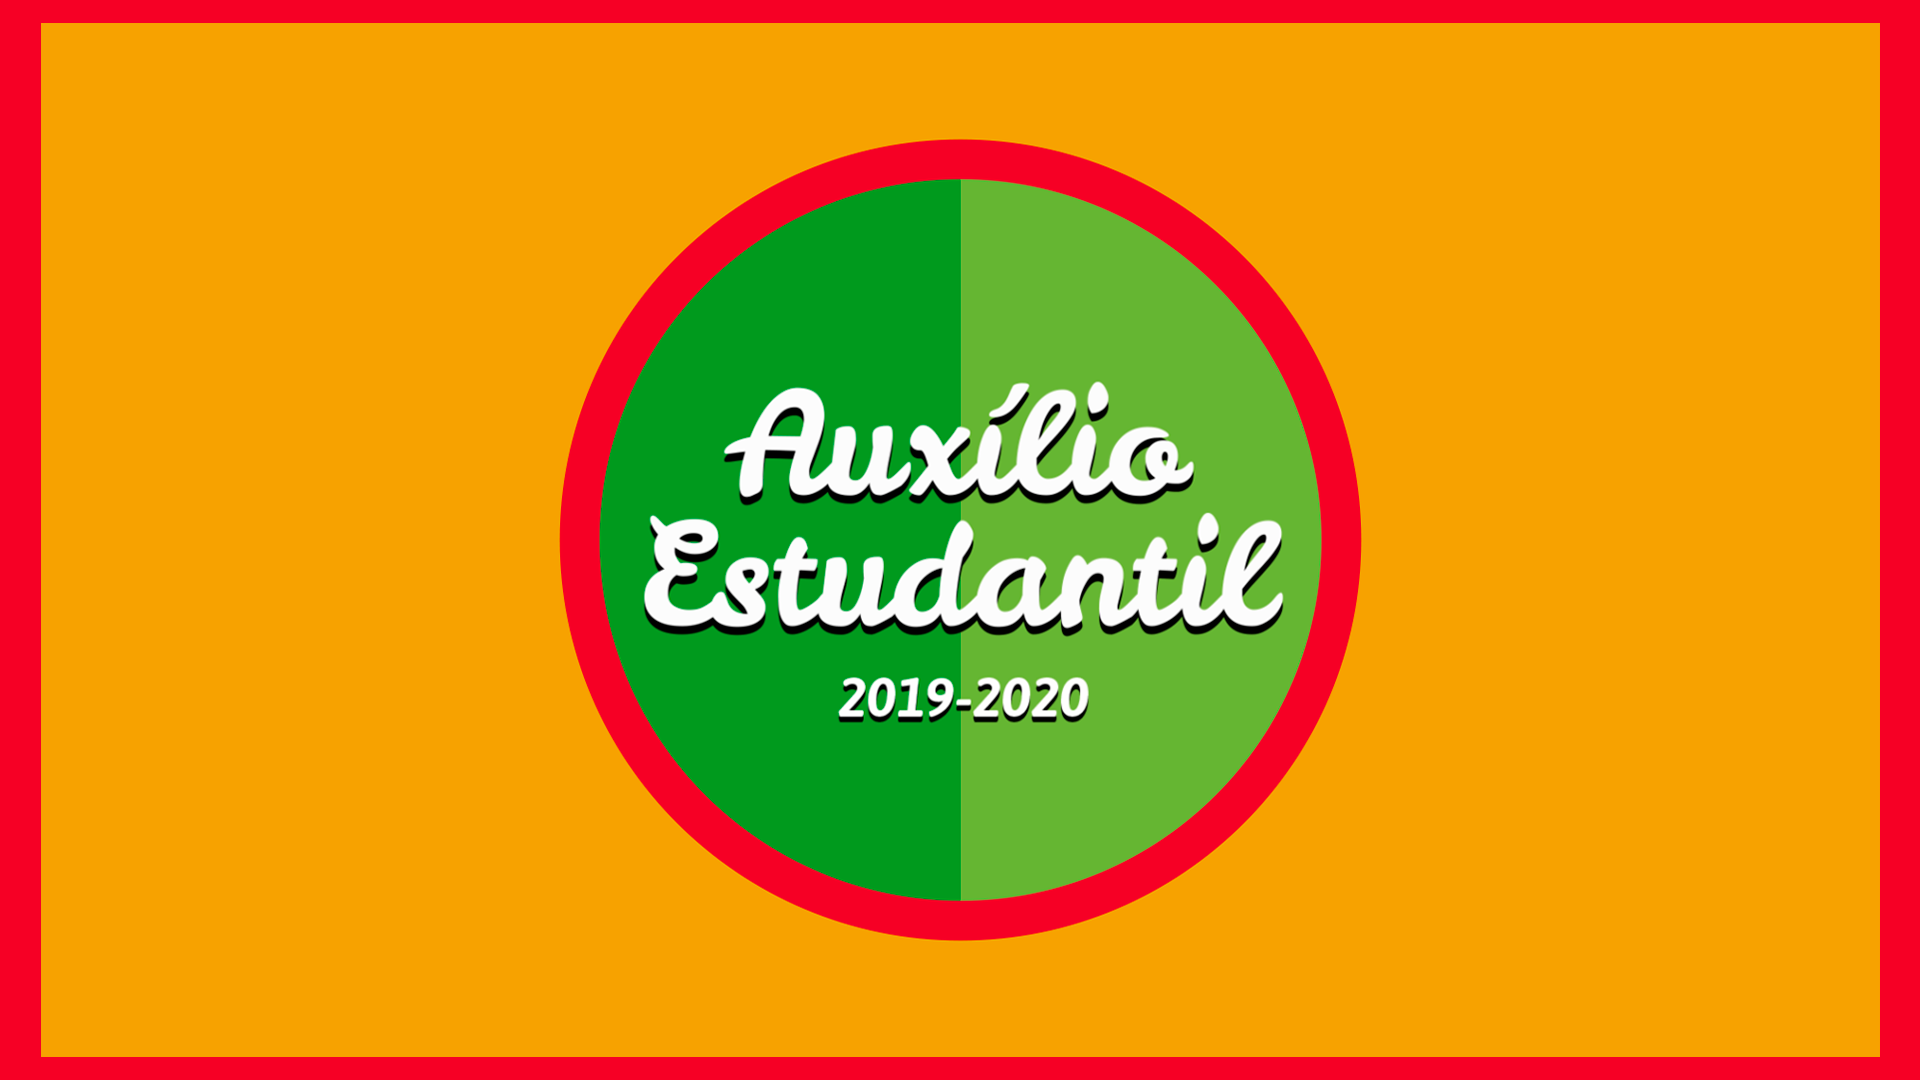 auxilio estud tutorial.00 00 03 25.Still001